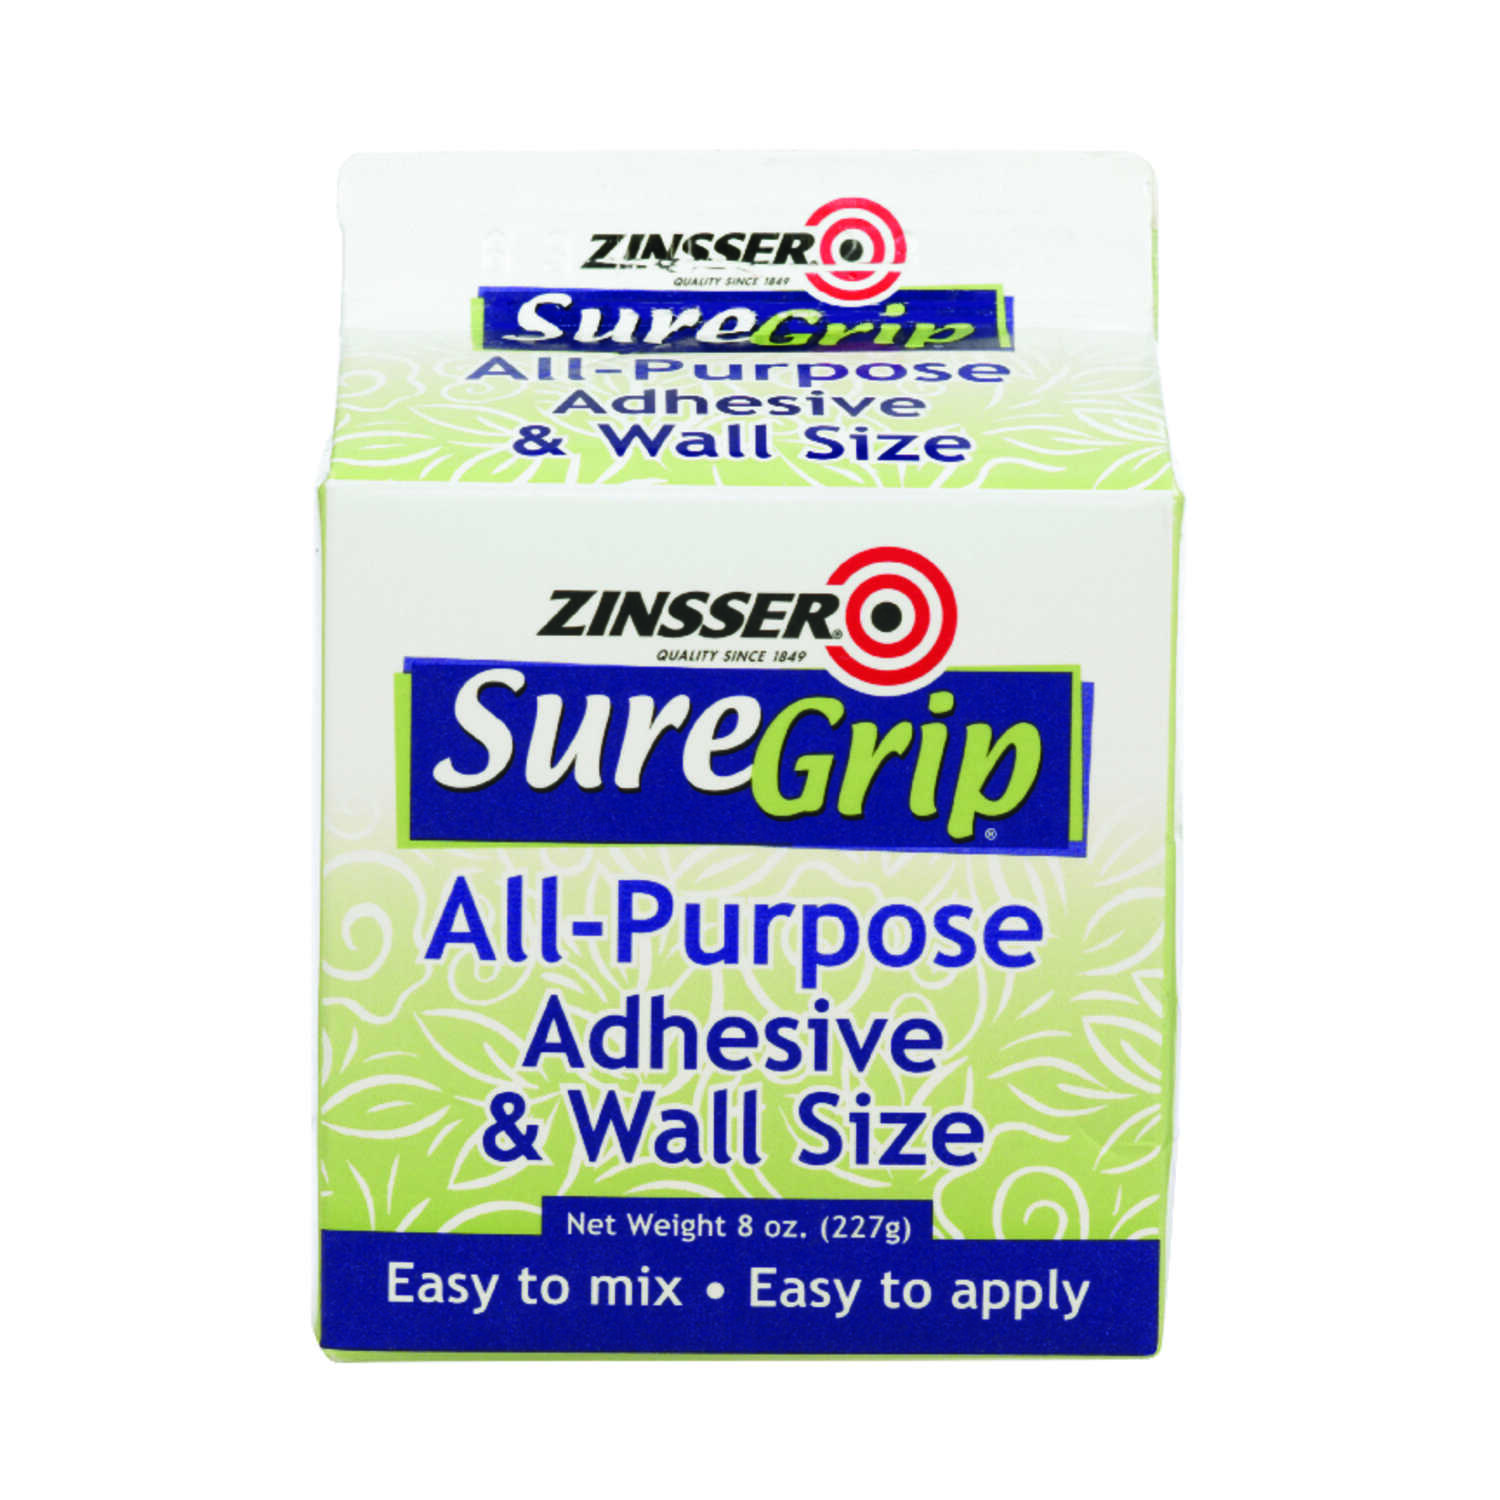 Zinsser  SureGrip  High Strength  Acrylic  Adhesive  8 gal.